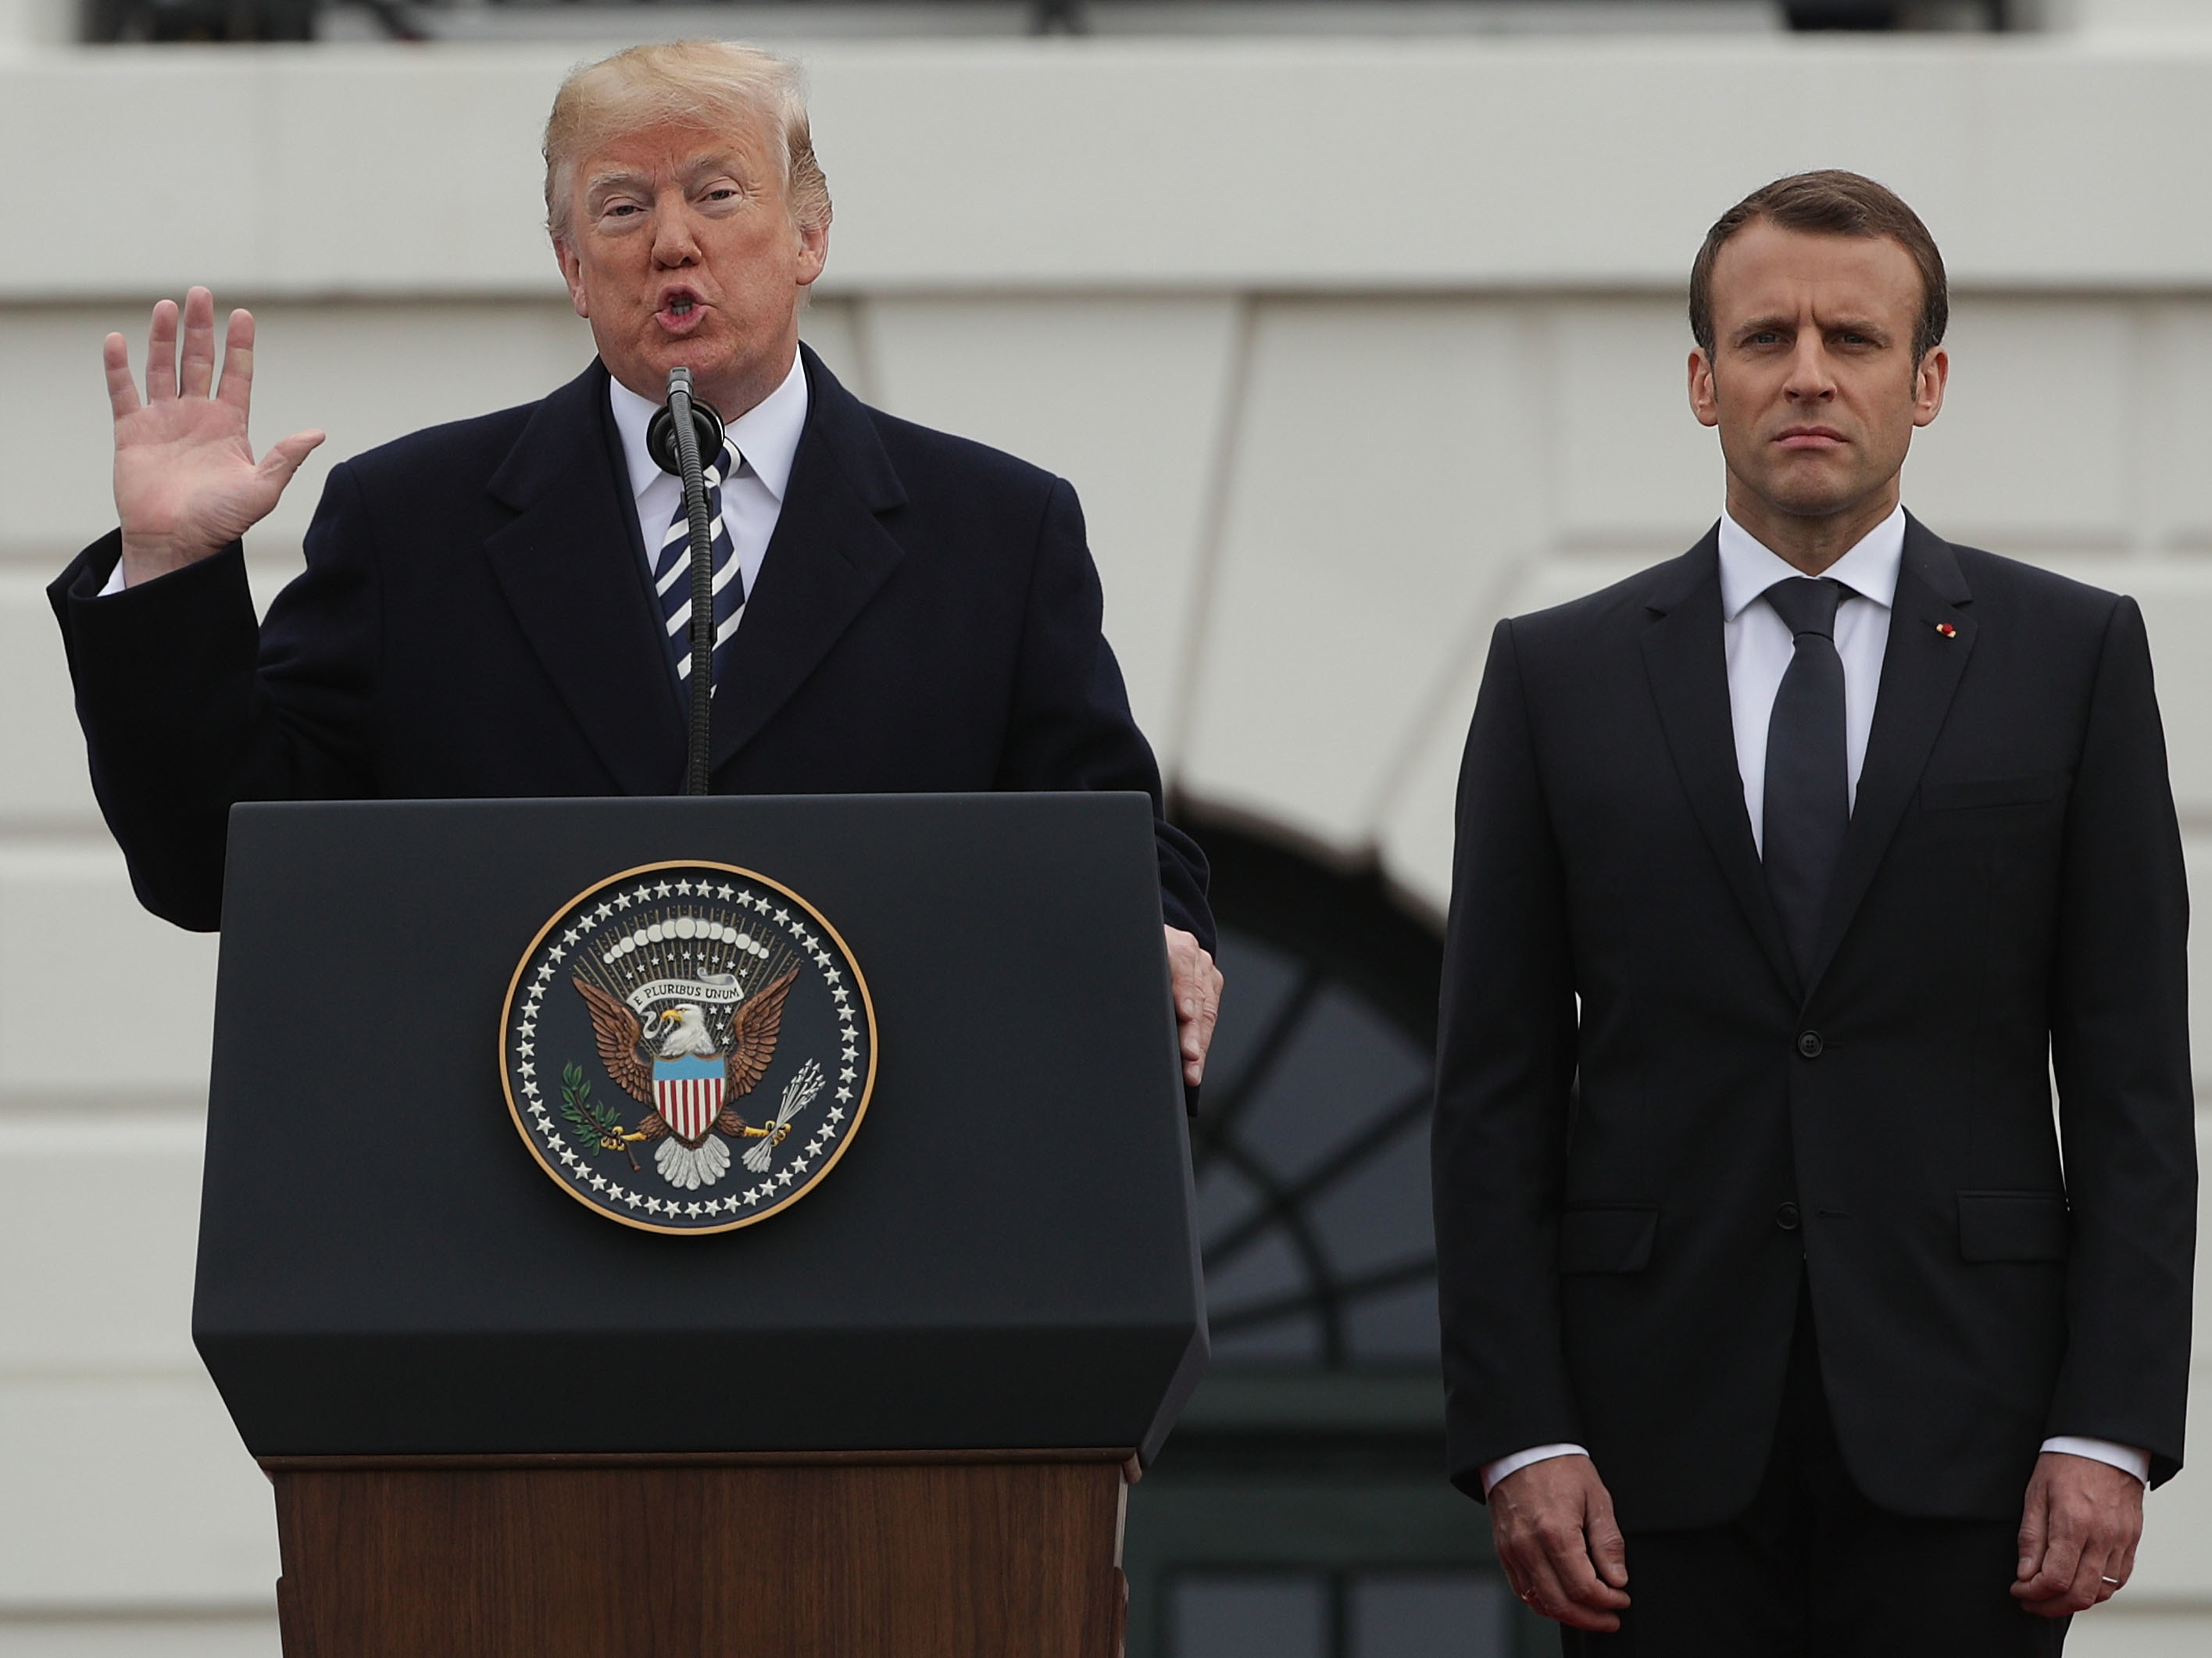 Talks with Trump are like sausages, says French President Macron: Report